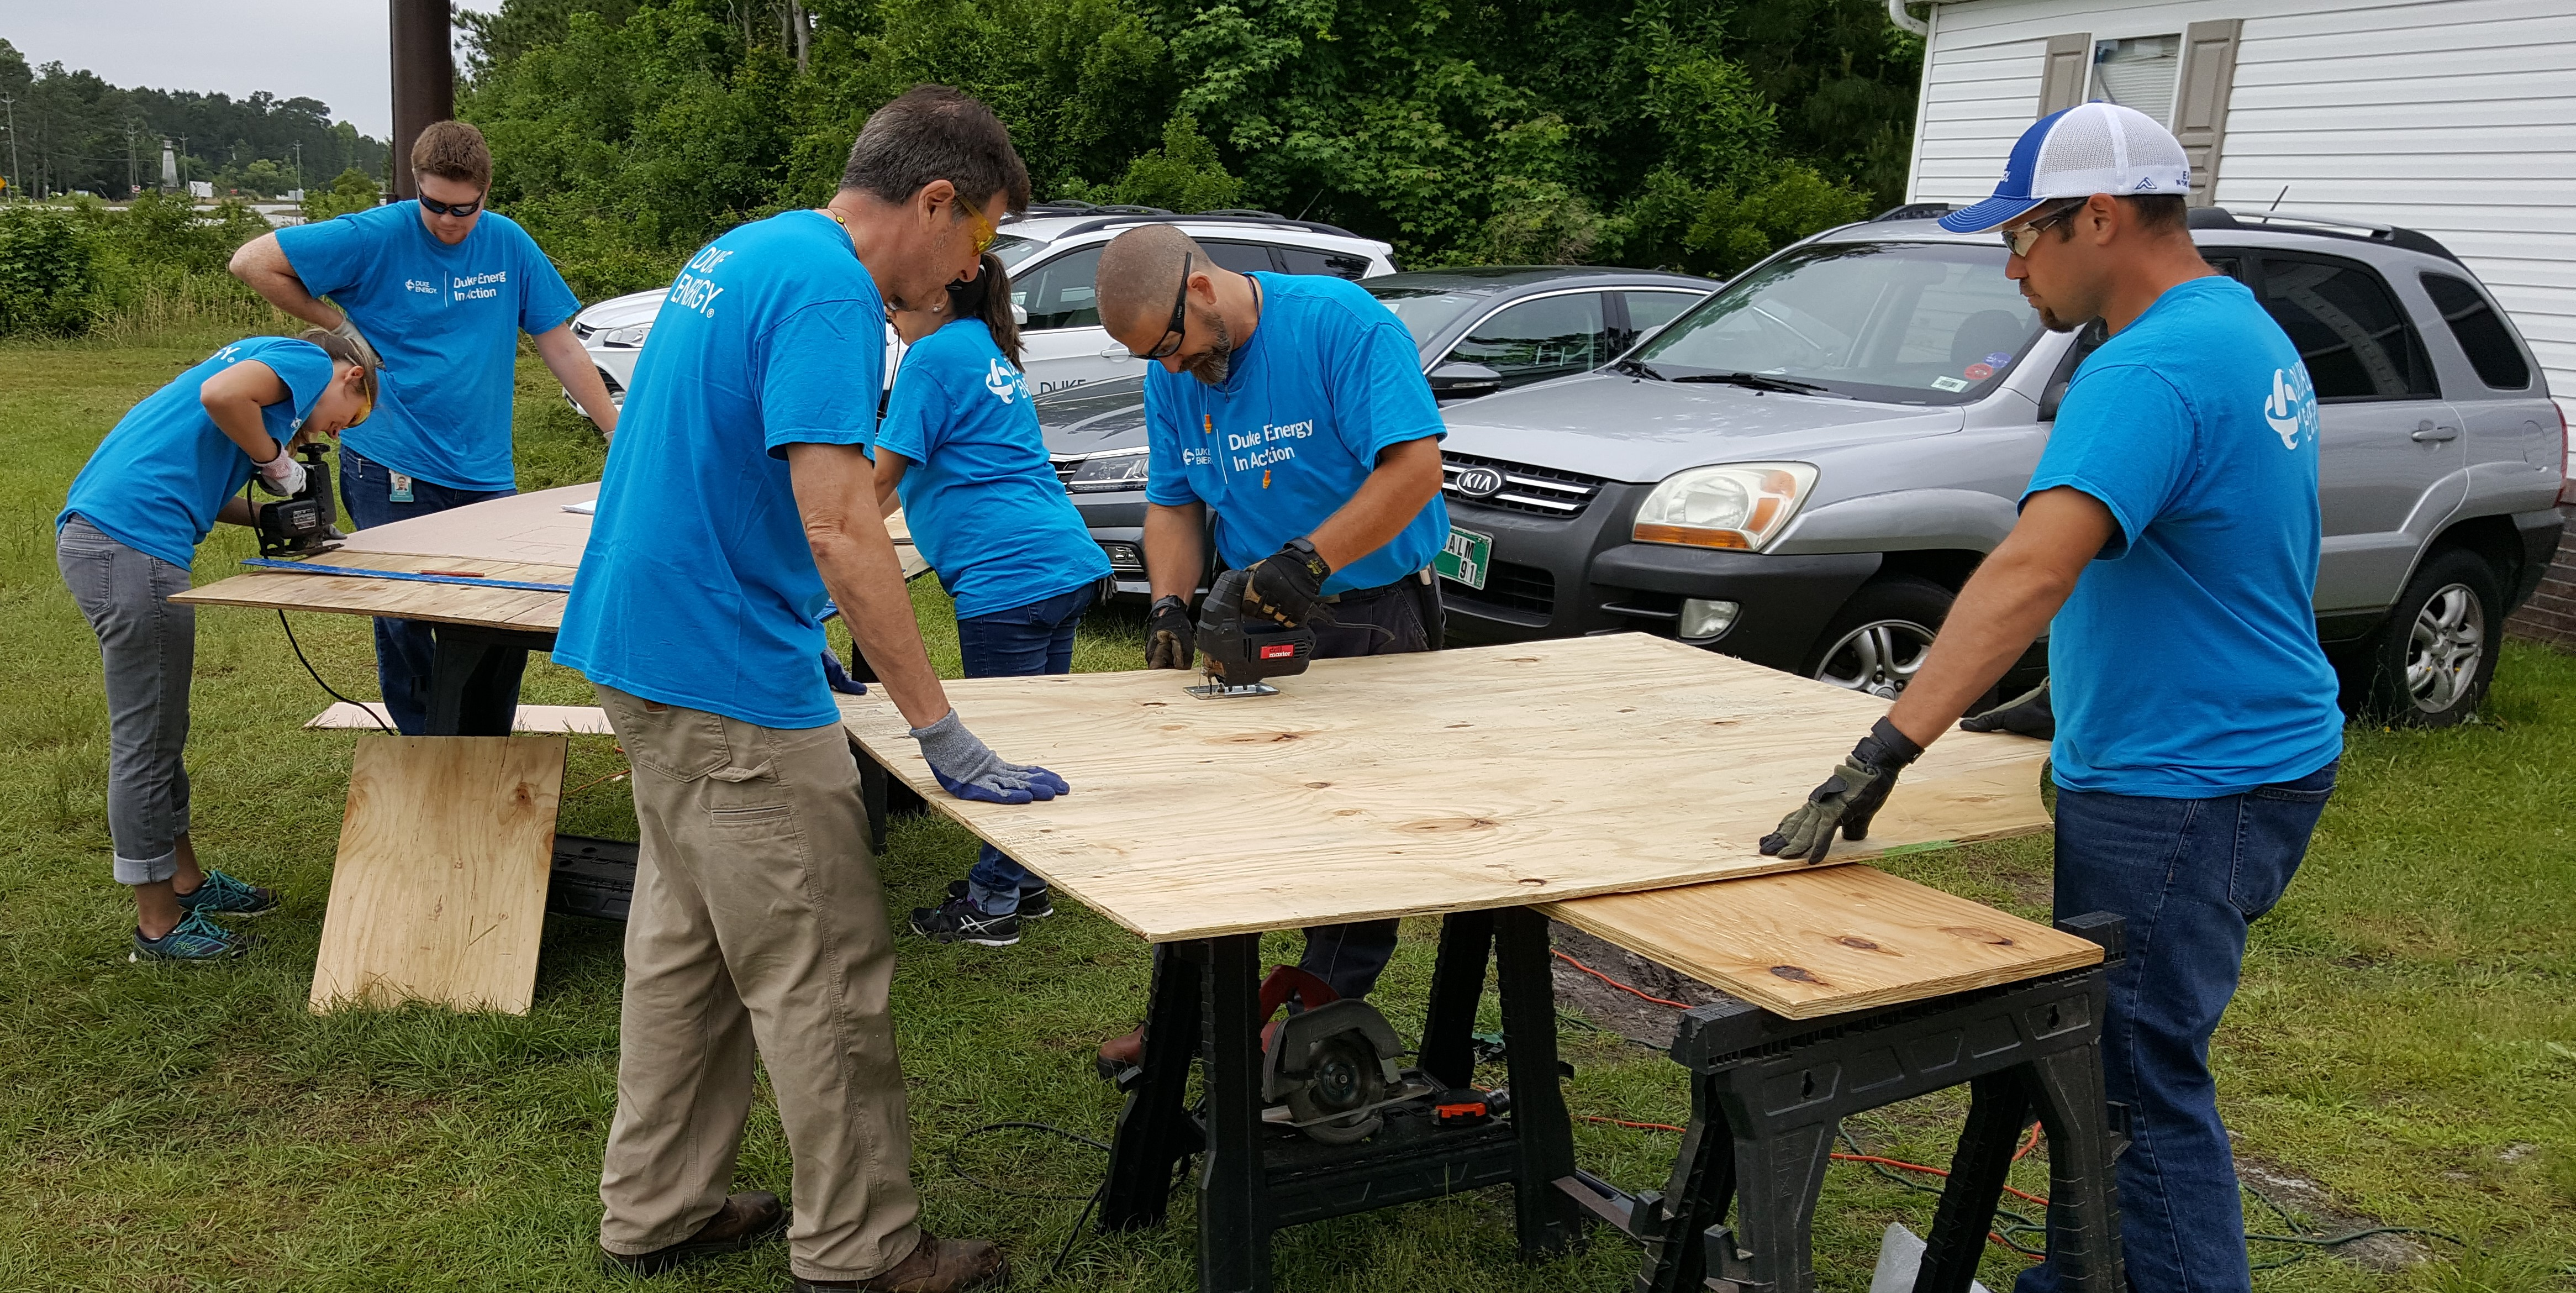 Duke Energy Volunteers